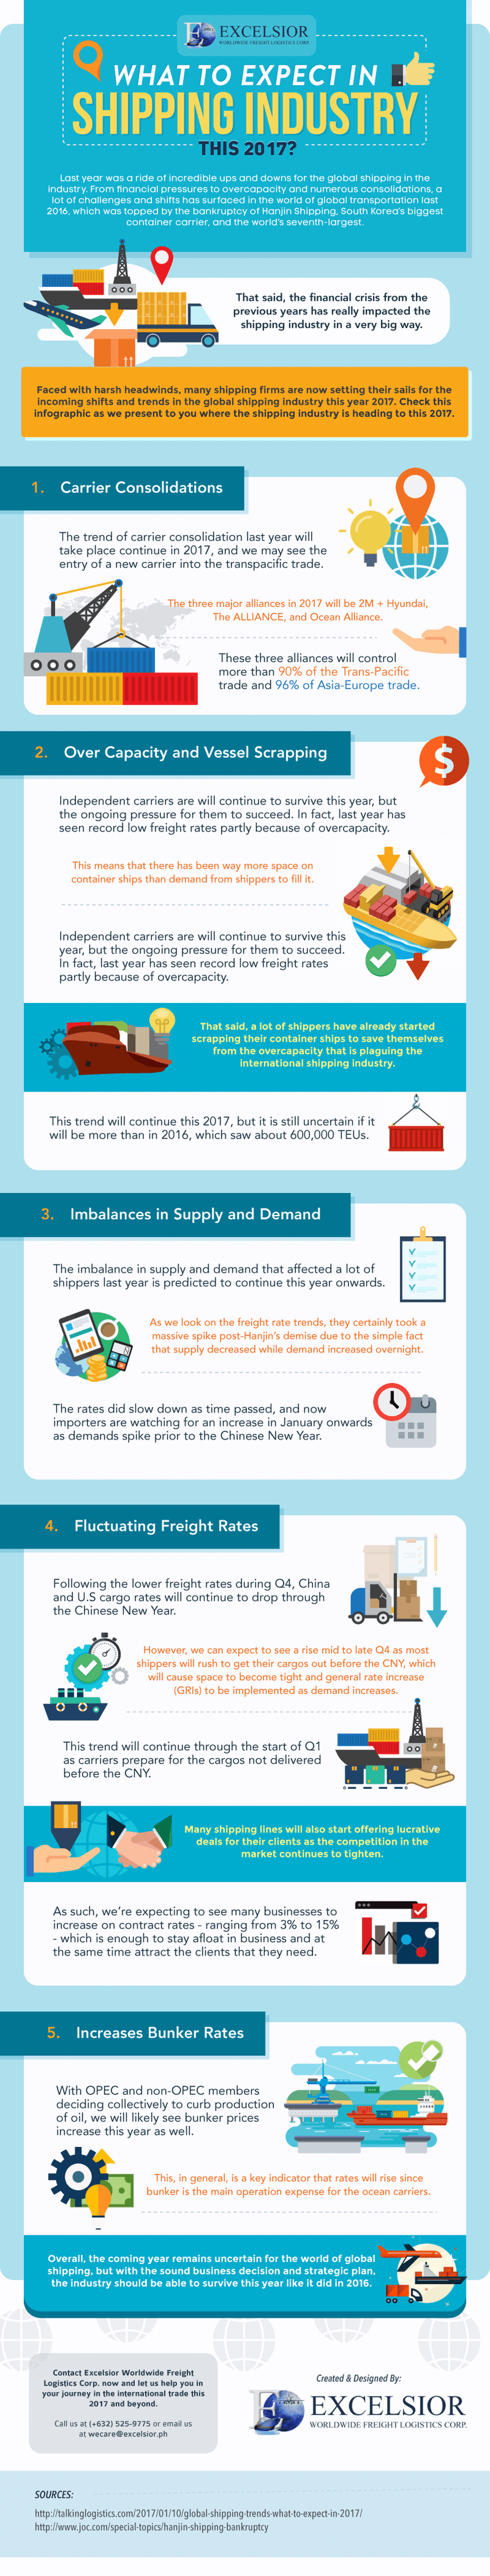 What-to-Expect-in-Shipping-Industry-This-2017-HD